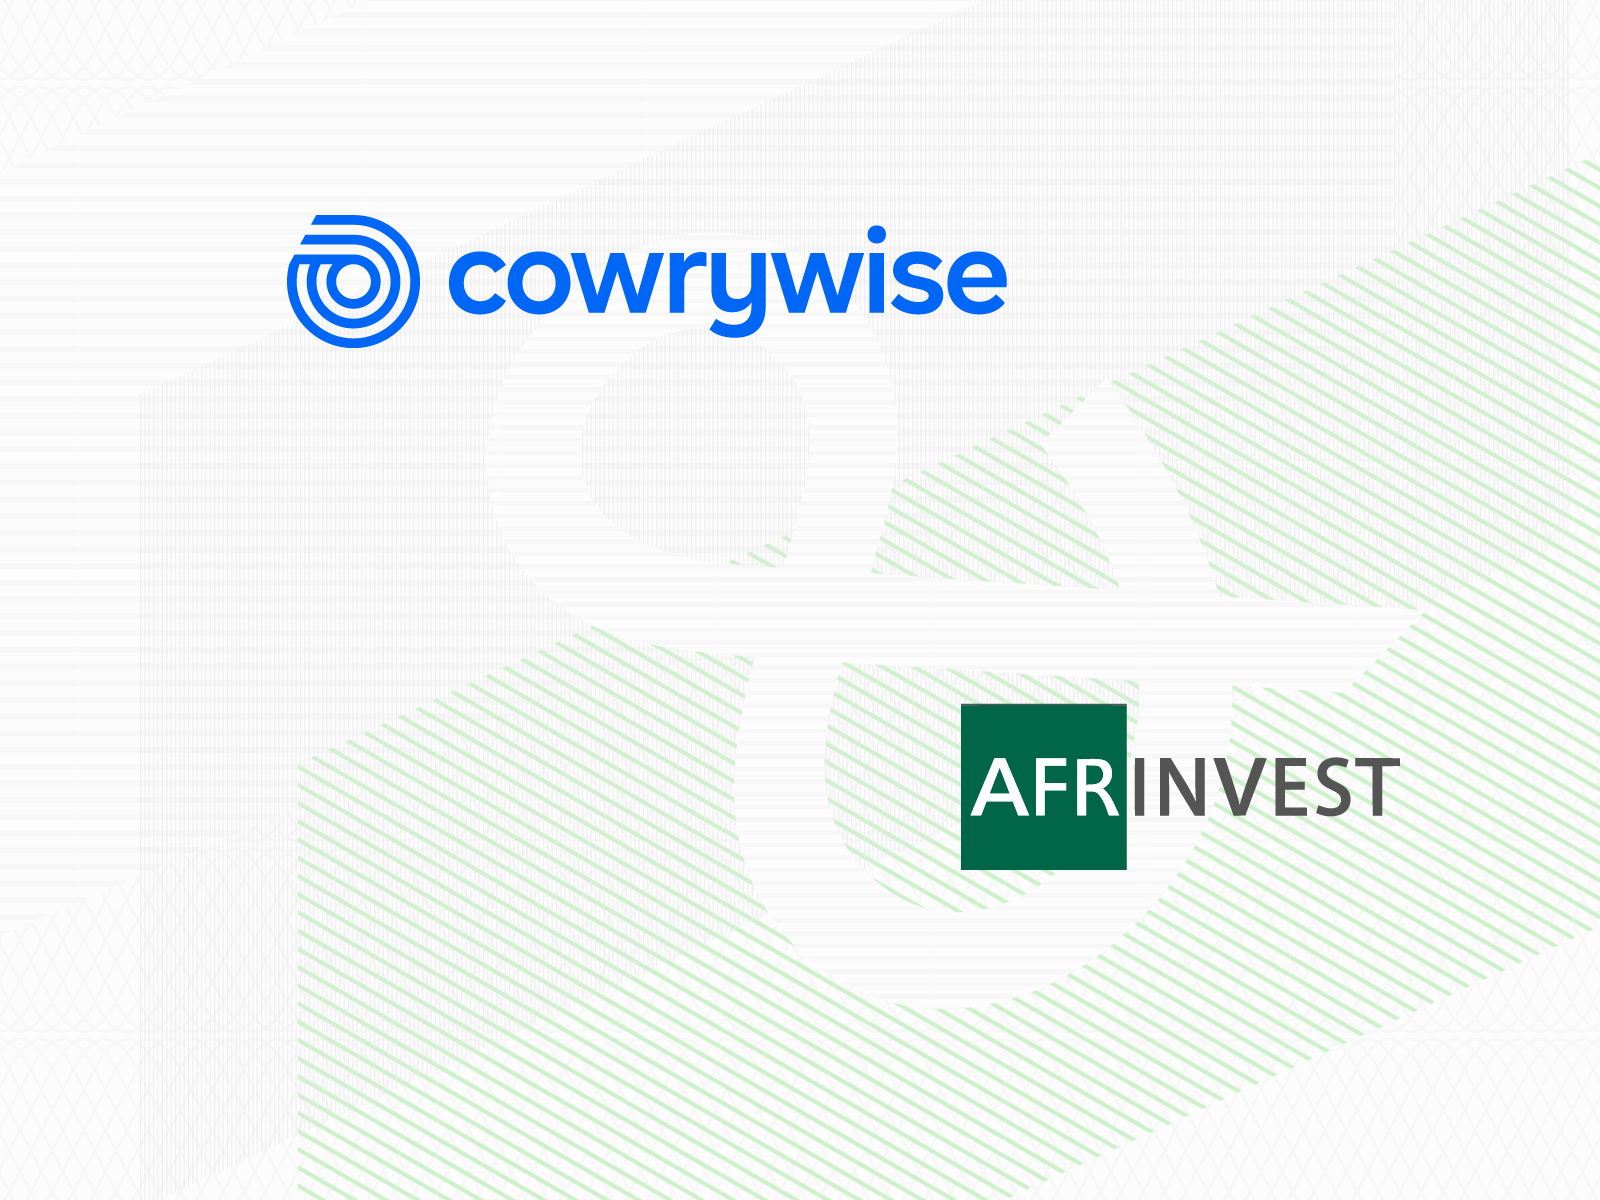 Cowrywise To Retail Afrinvest Mutual Funds